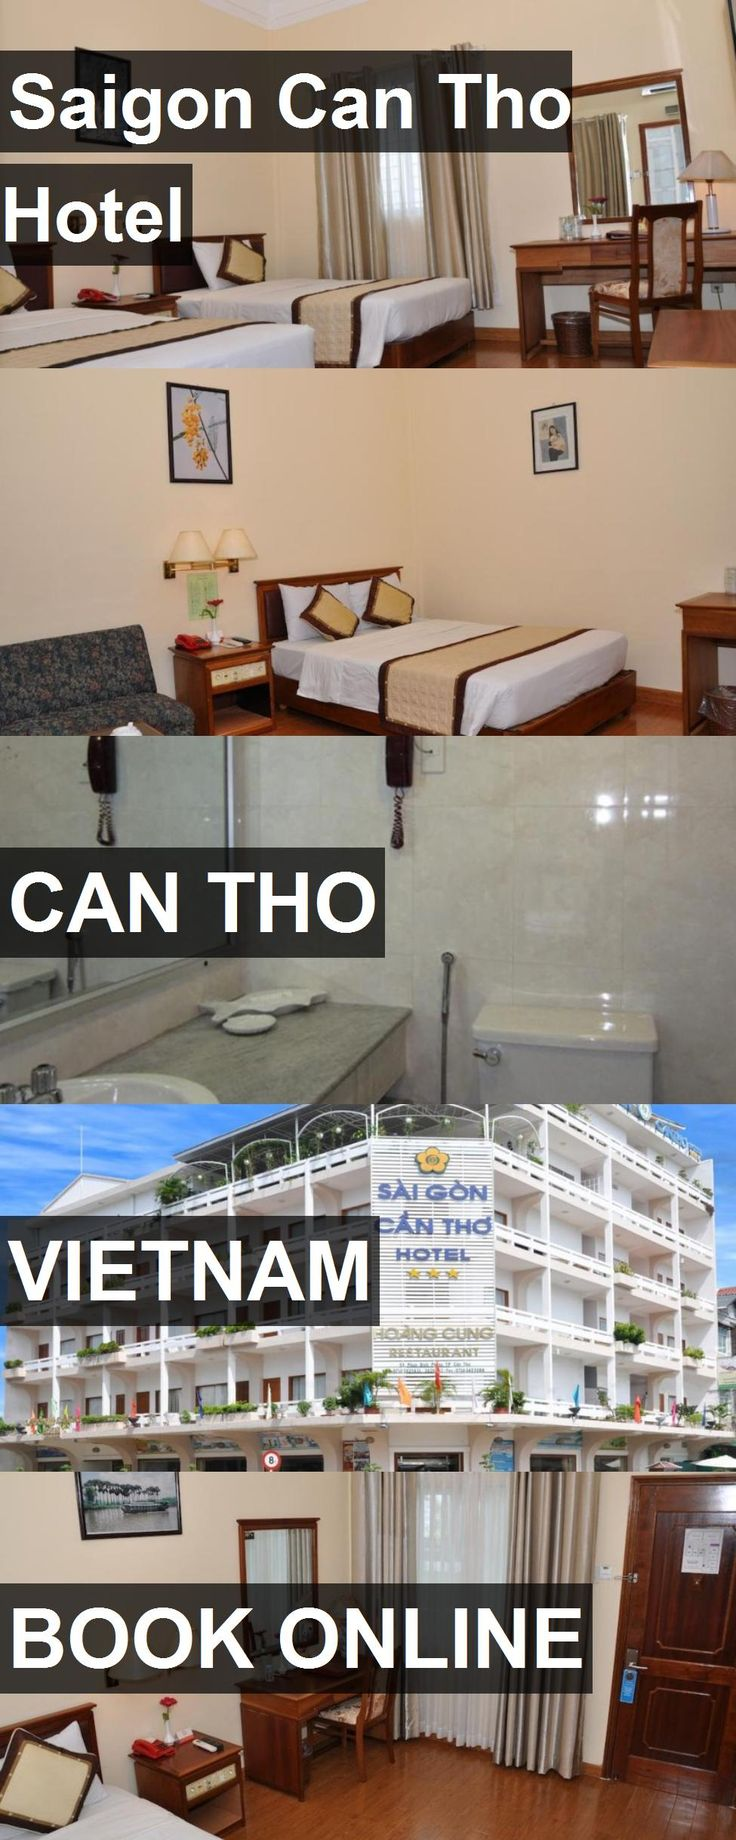 Hotel Saigon Can Tho Hotel in Can Tho, Vietnam. For more information, photos, reviews and best prices please follow the link. #Vietnam #CanTho #SaigonCanThoHotel #hotel #travel #vacation